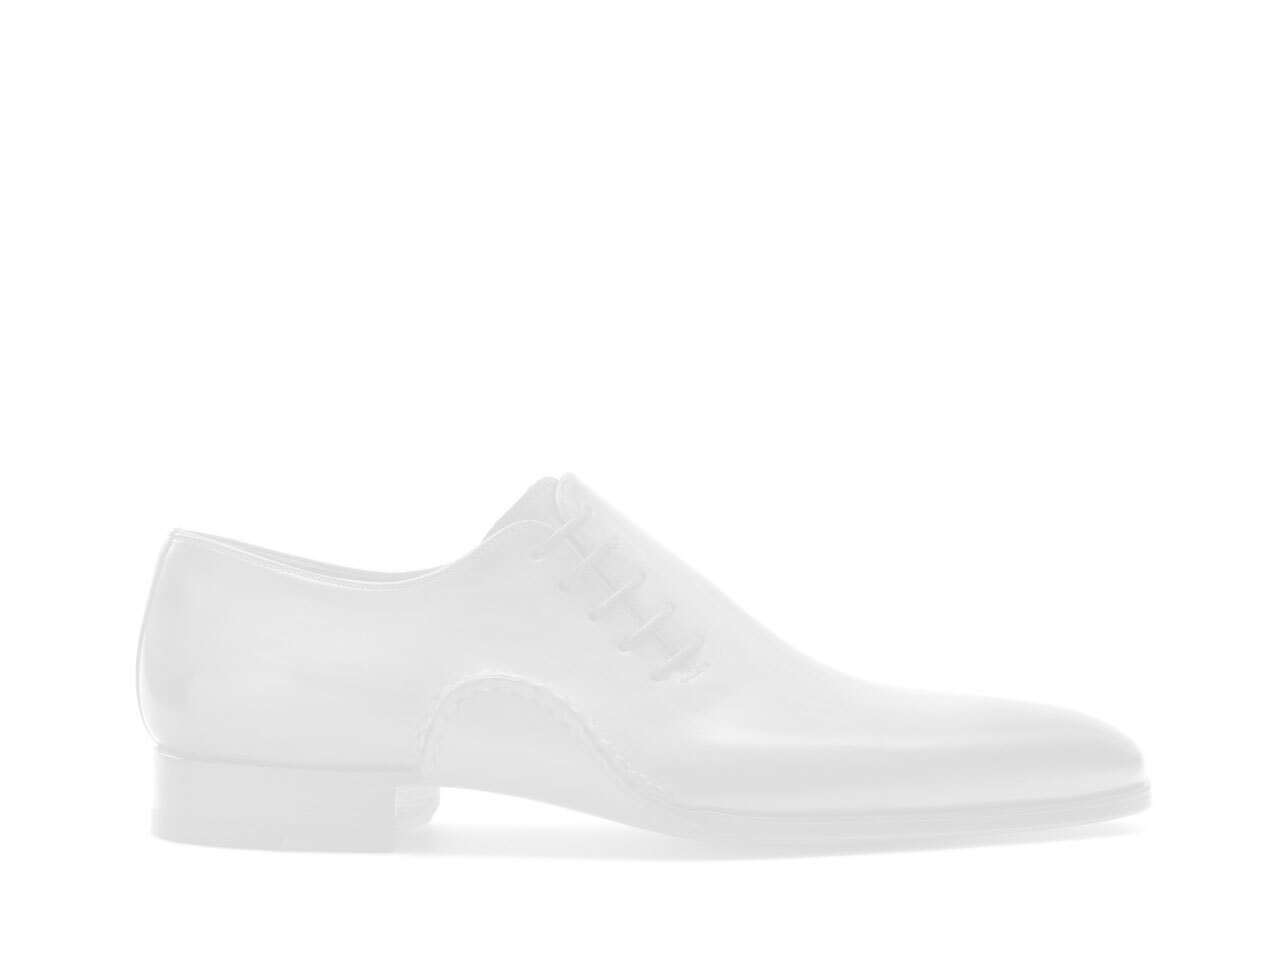 Sole of the Magnanni Tomares Grey Men's Sneakers